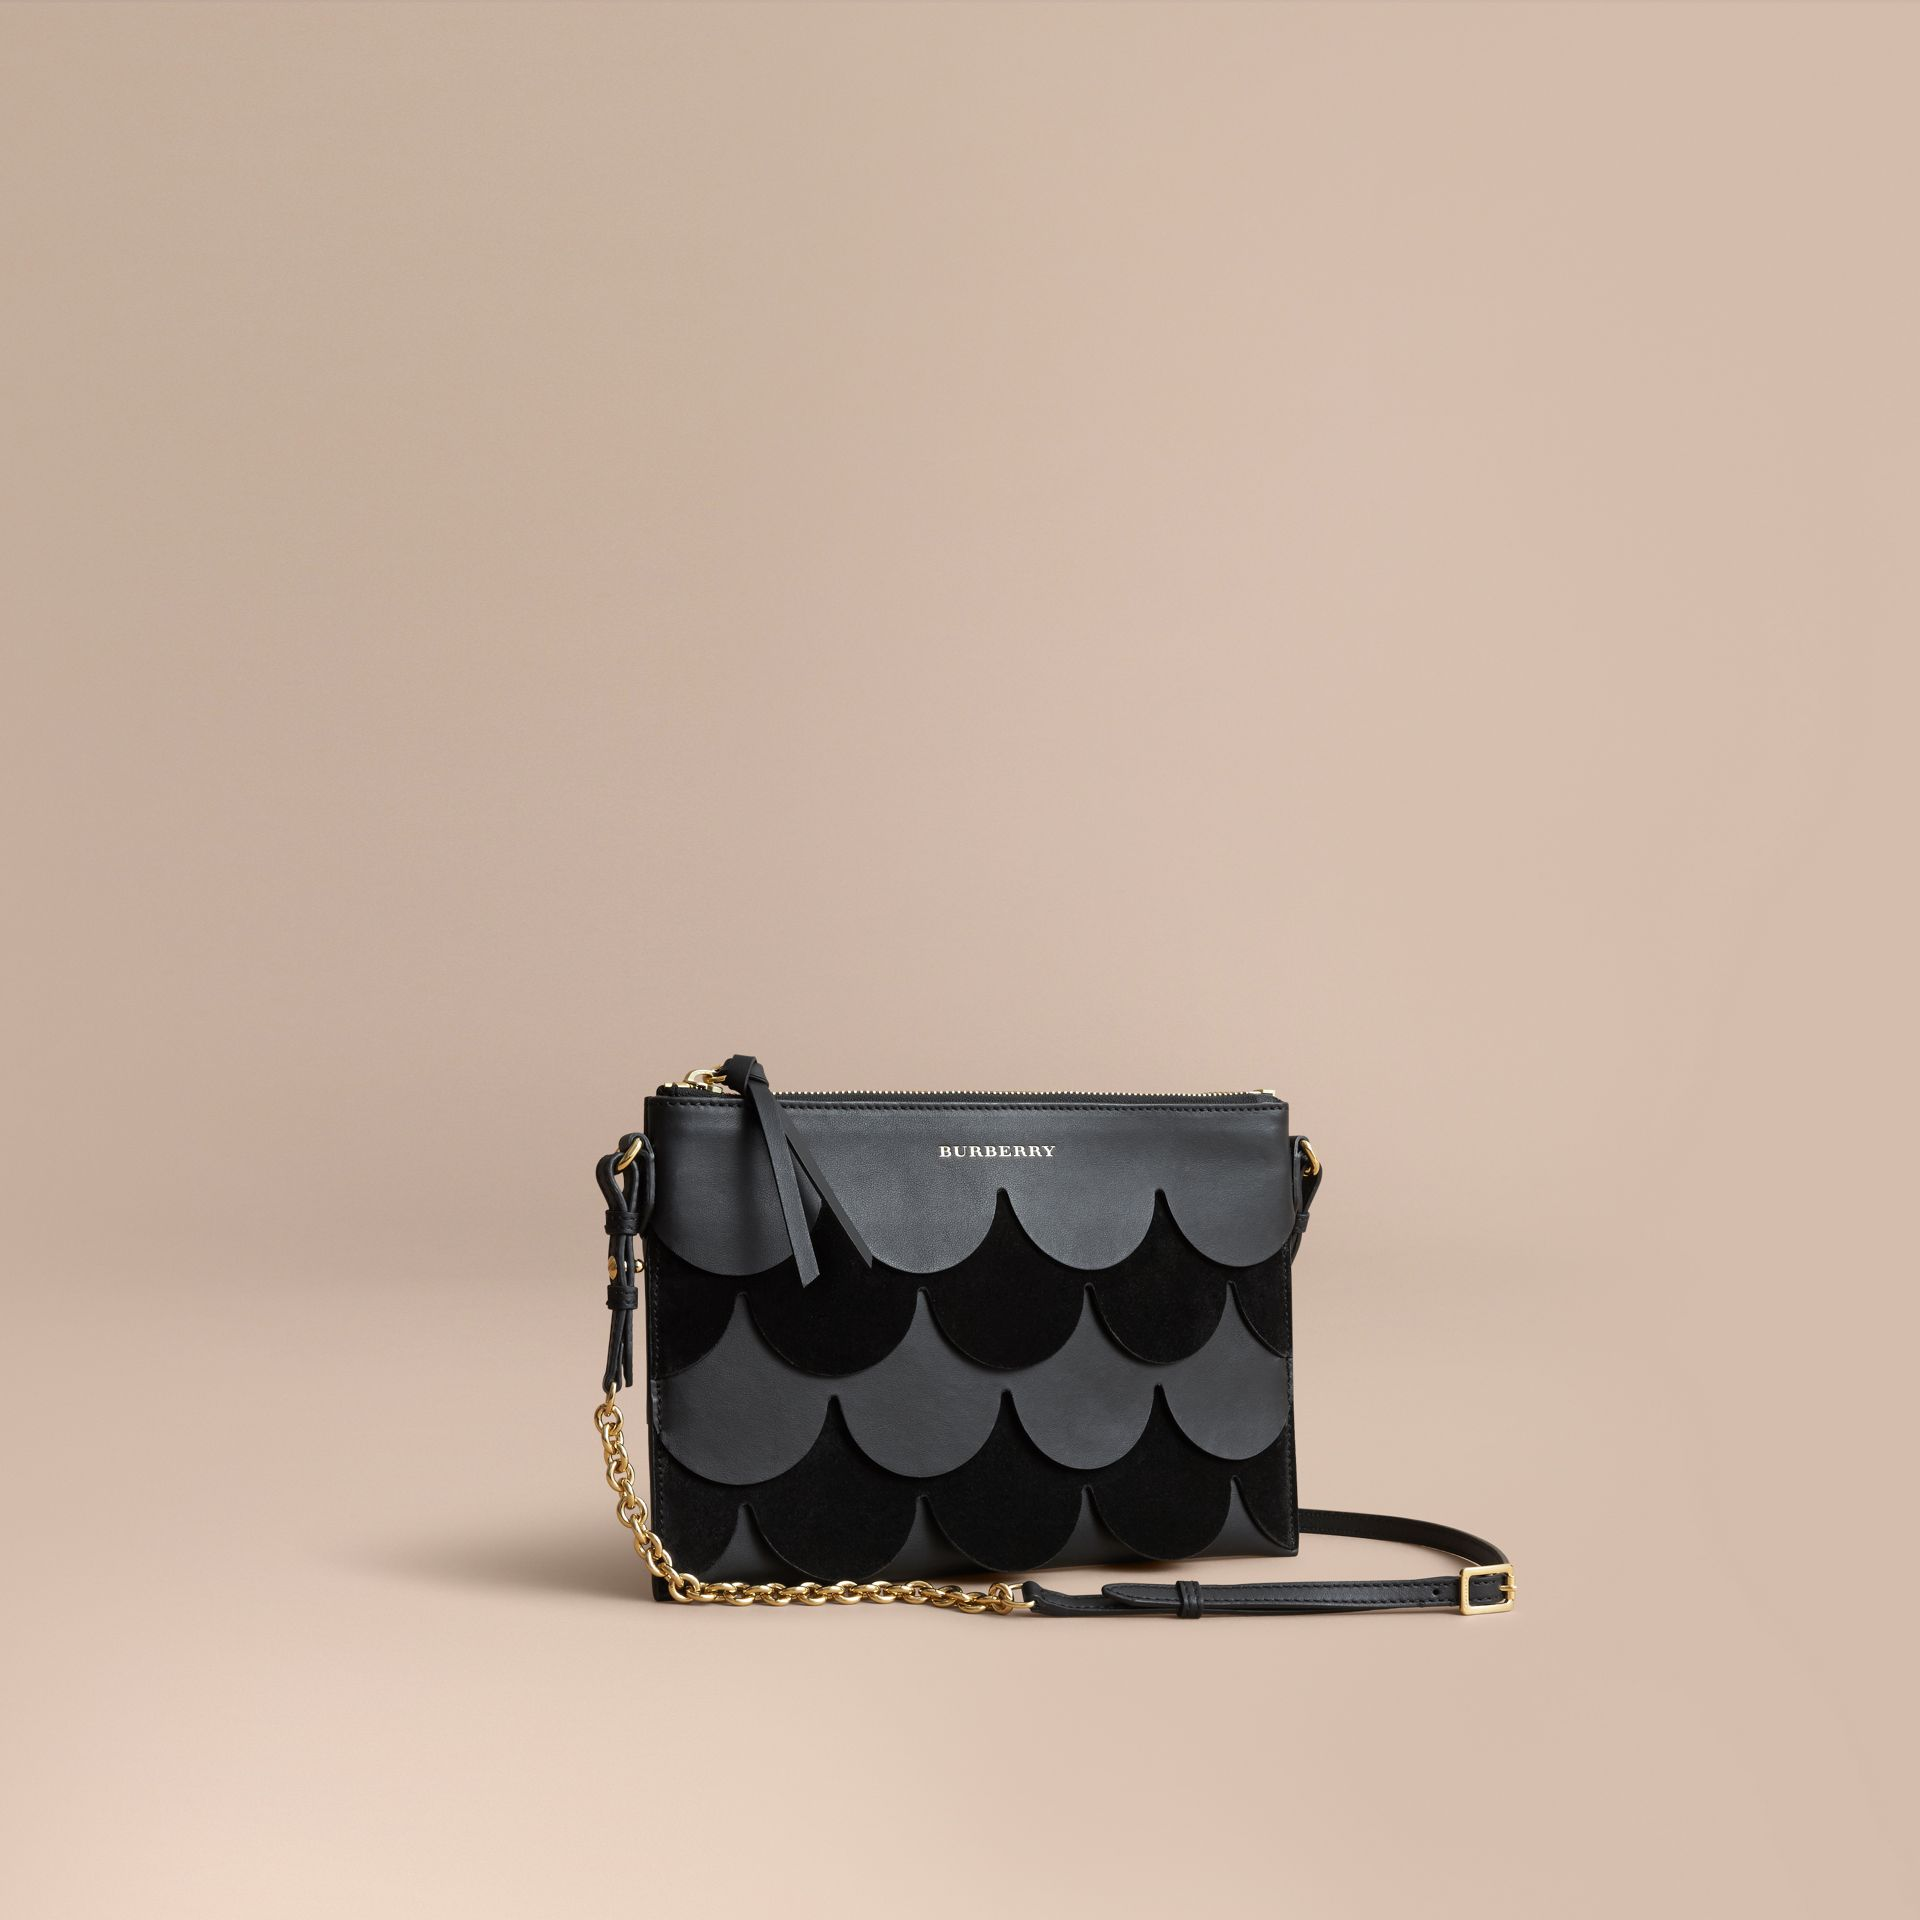 Two-tone Scalloped Leather and Suede Clutch Bag in Black - Women | Burberry - gallery image 1